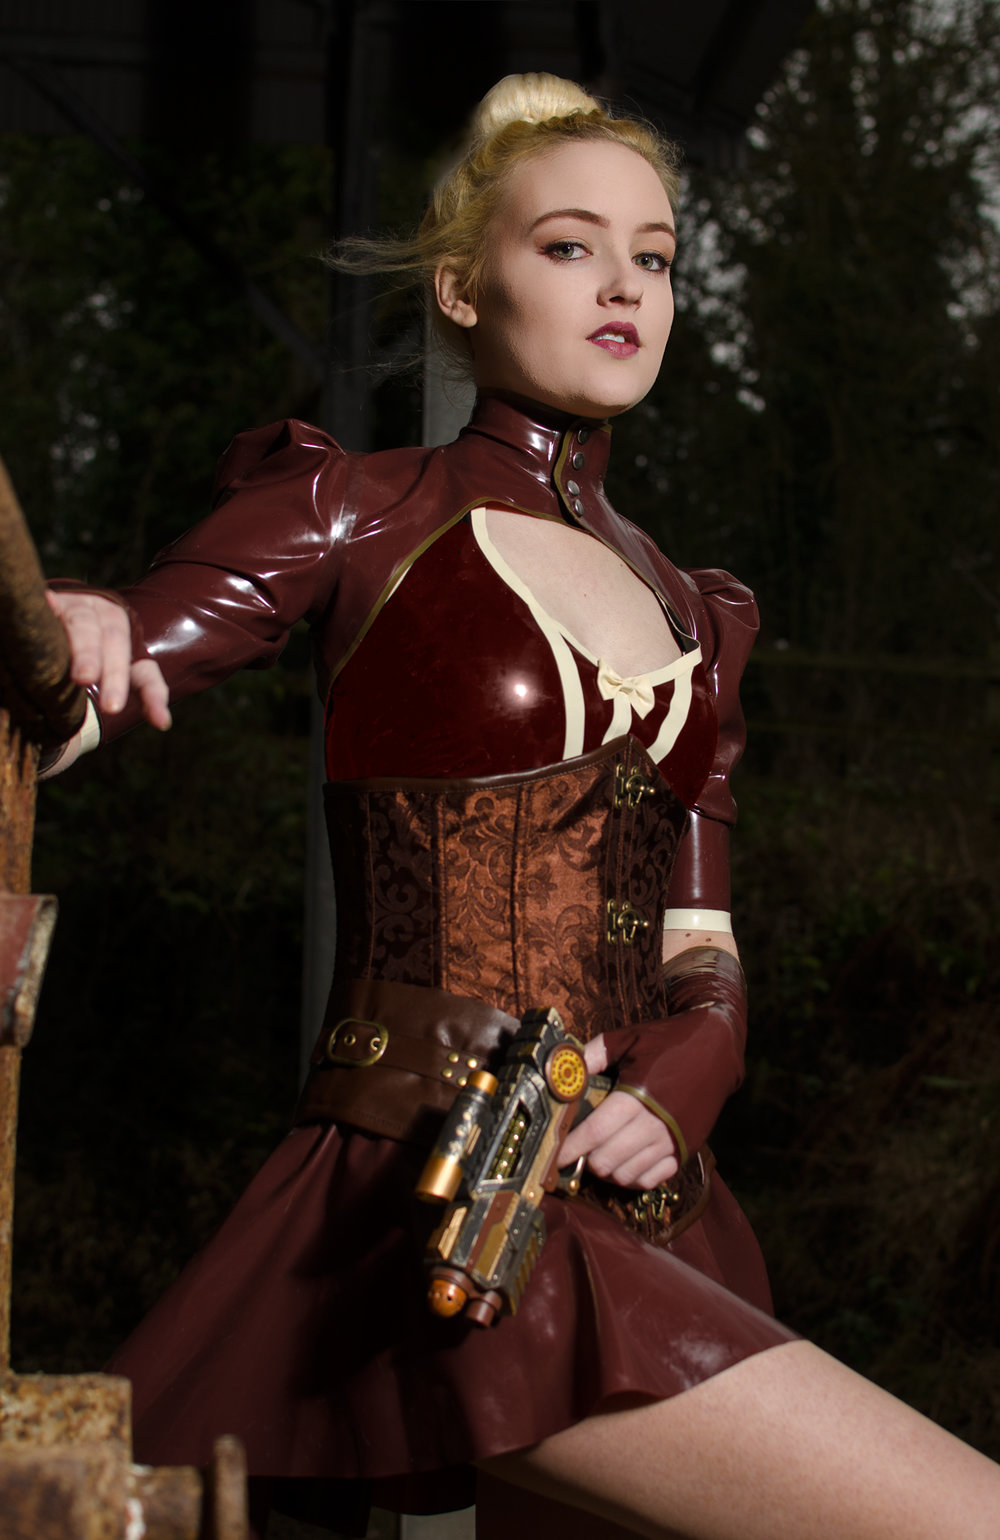 1031fc37c65f-SteamPunk_Latex_005_1.jpg